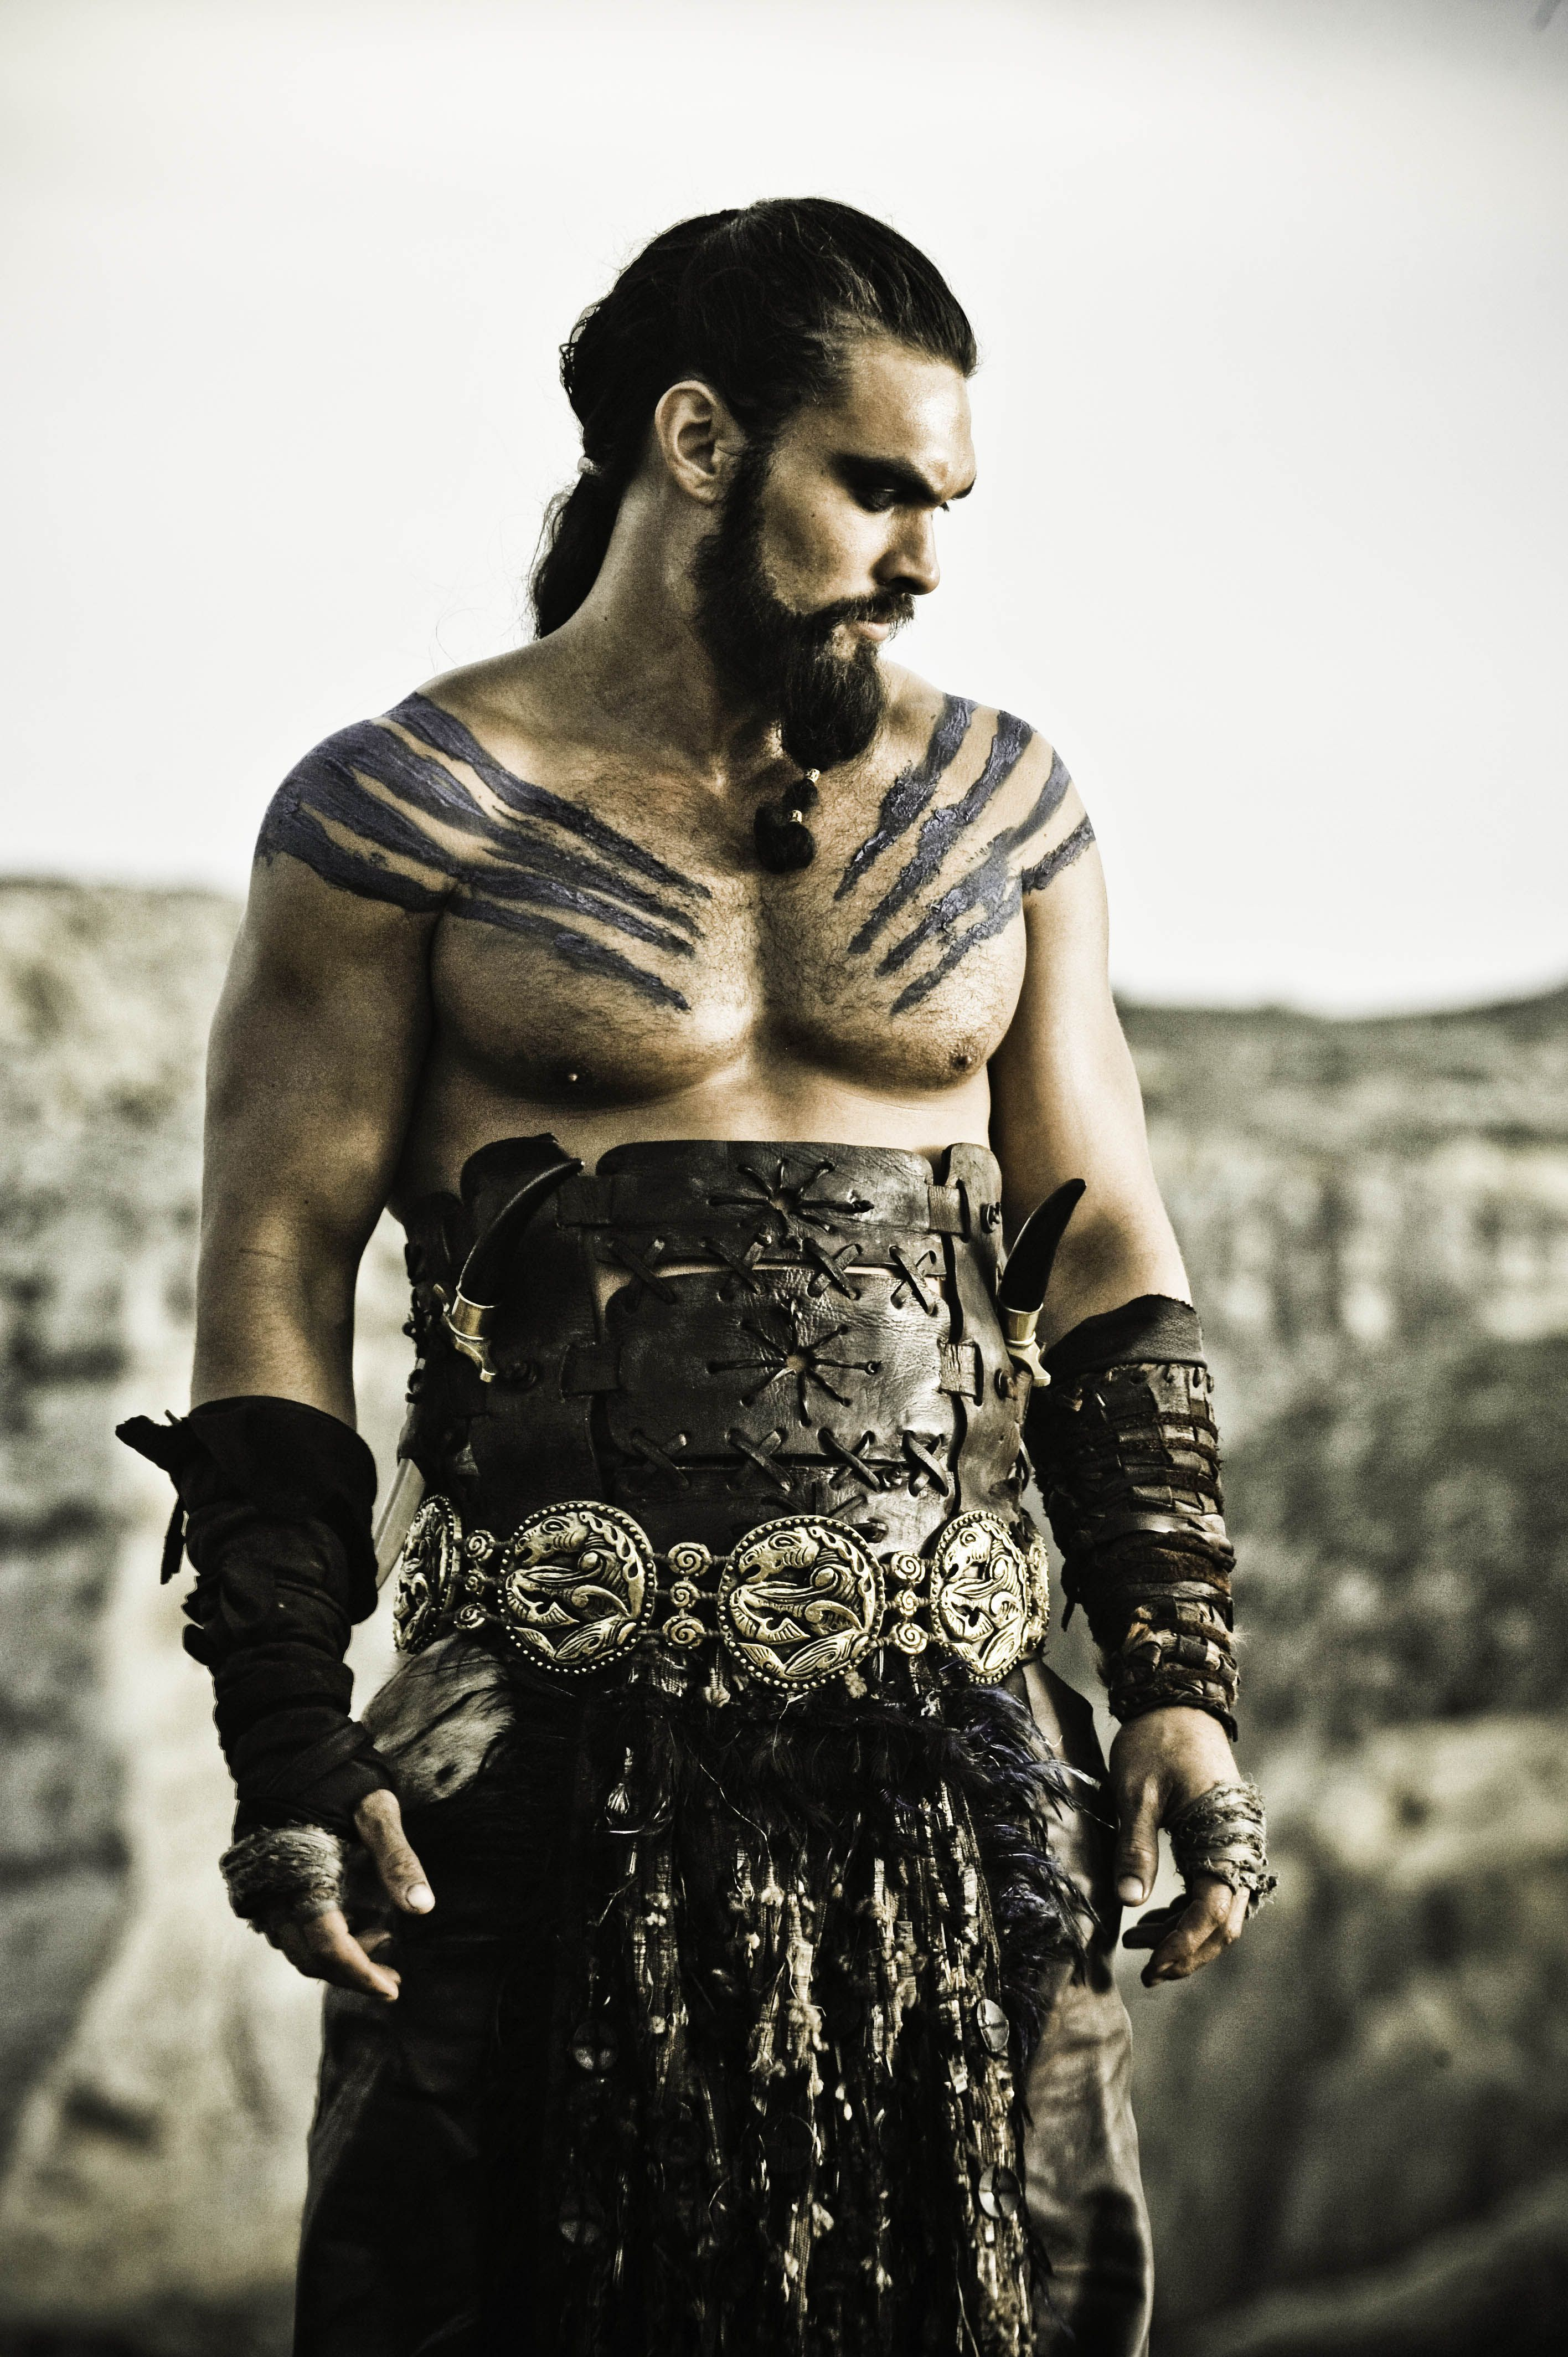 Jason Momoa. Game of Thrones. He is gorgeous!! Love him!